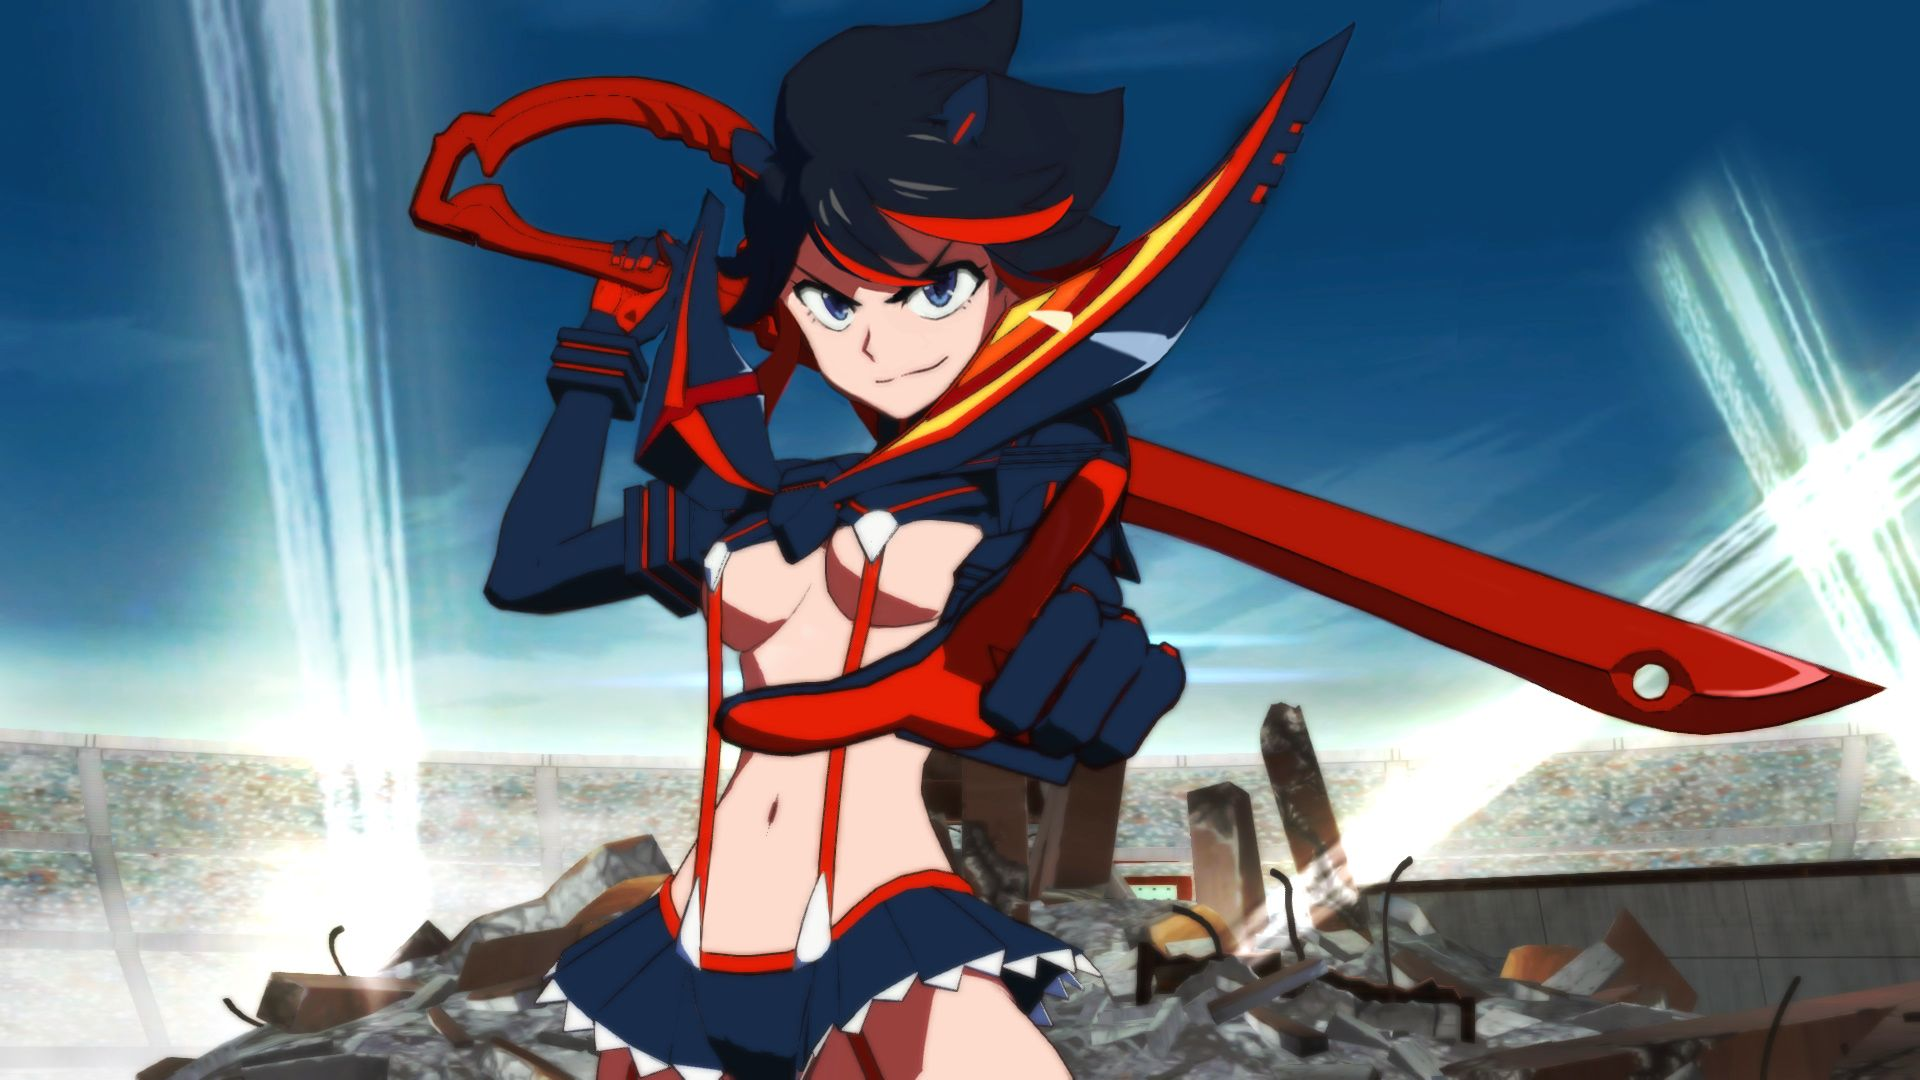 Kill La Kill The Game If Demo Released On Playstation 4 Mxdwn Games